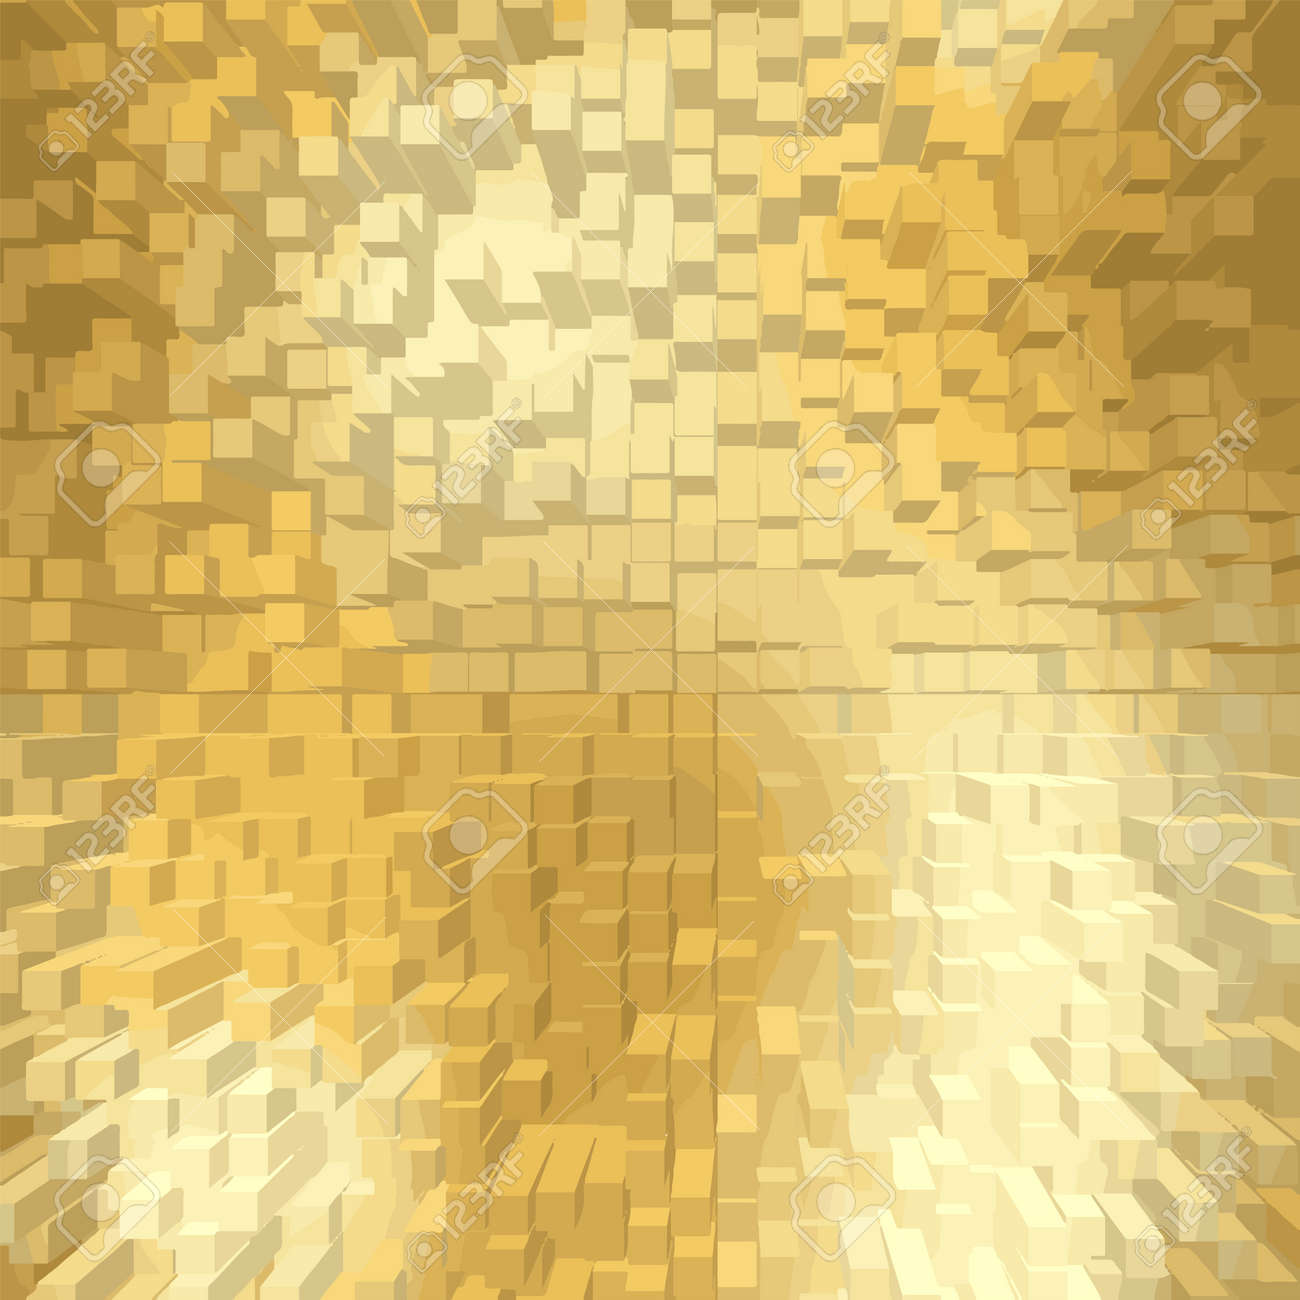 gold glitter texture square border template cube and square glowing new year